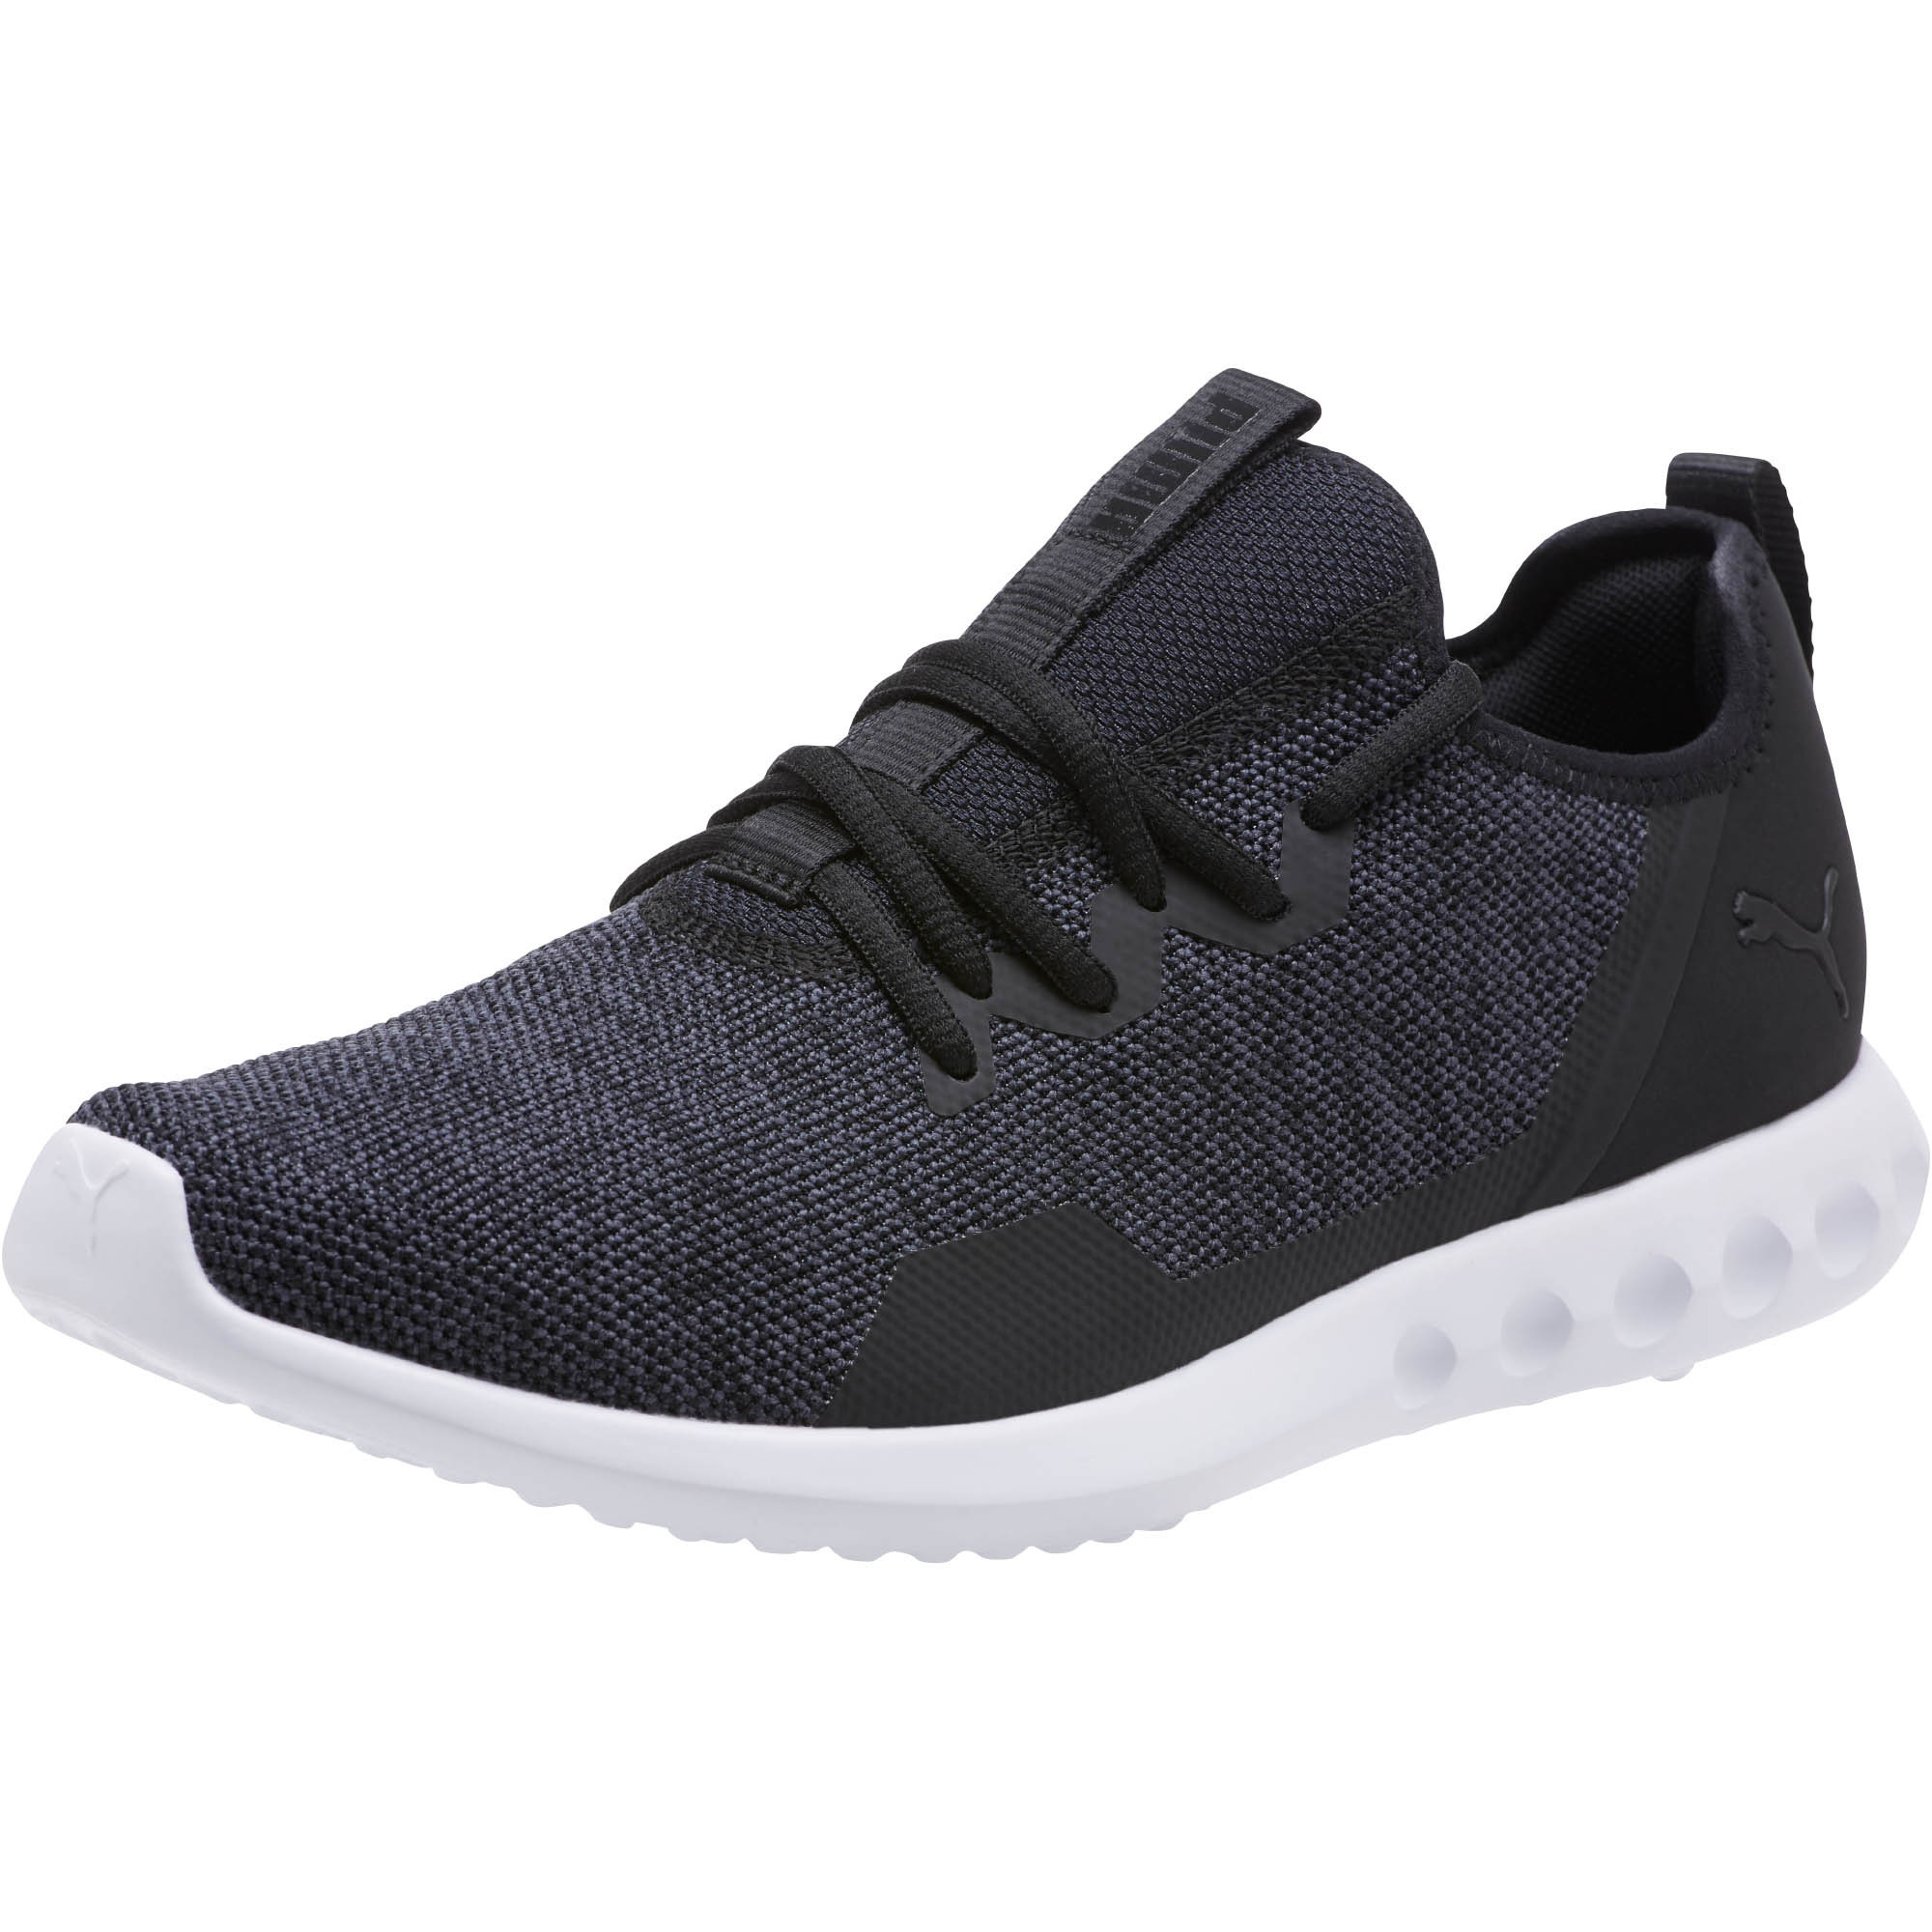 PUMA-Carson-2-X-Knit-Men-039-s-Running-Shoes-Men-Shoe-Running thumbnail 8